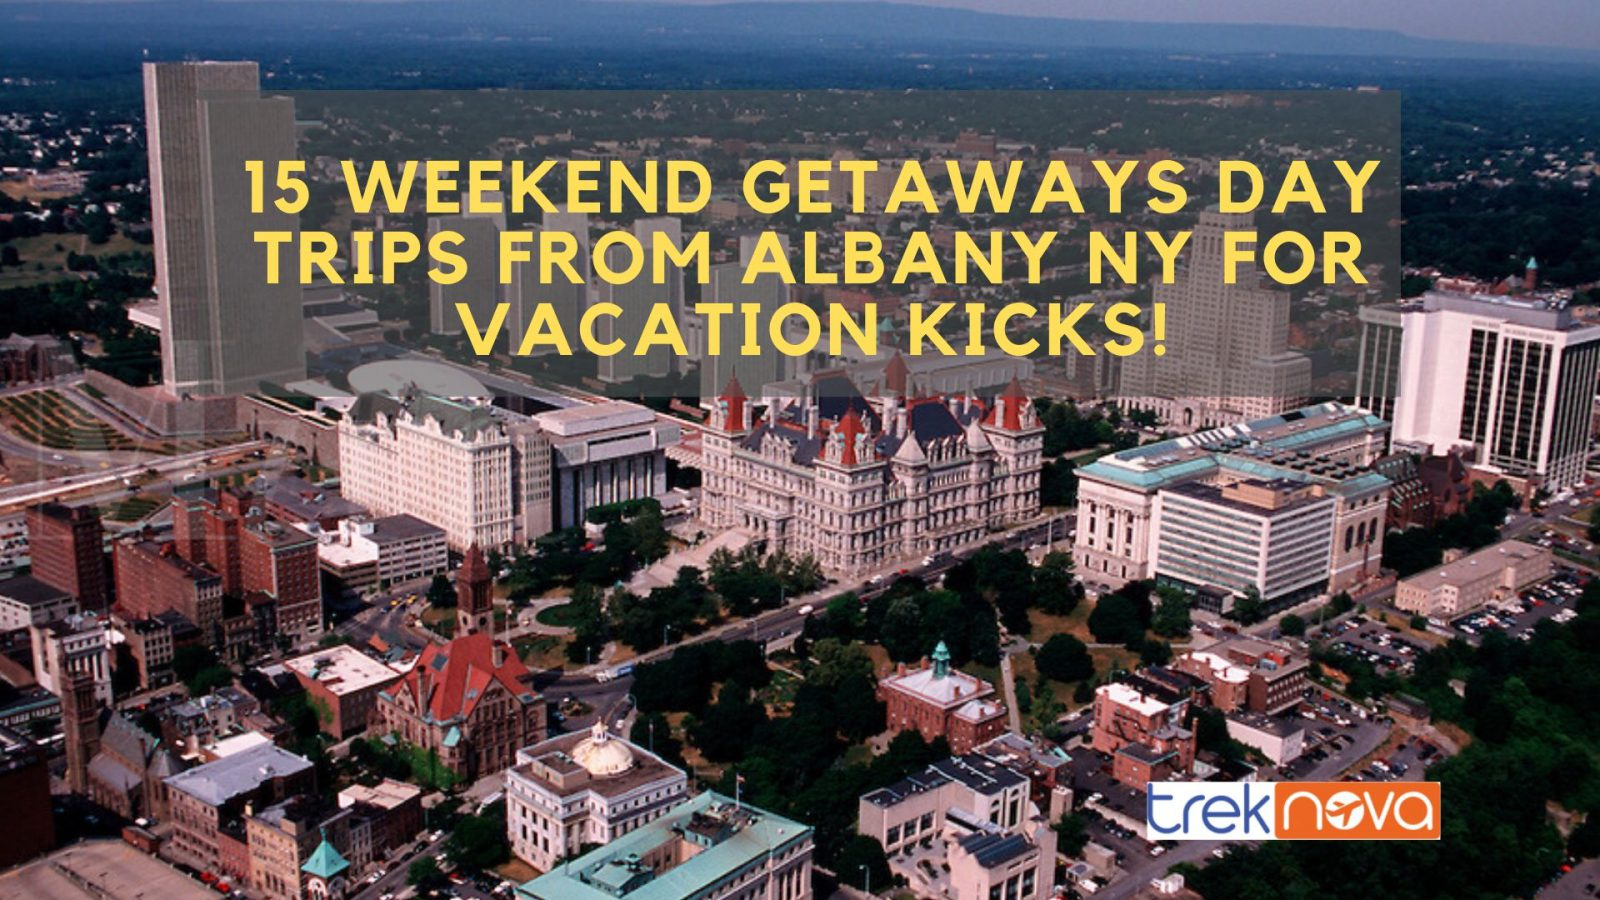 15 Weekend Getaways Day Trips From Albany NY For Vacation Kicks!